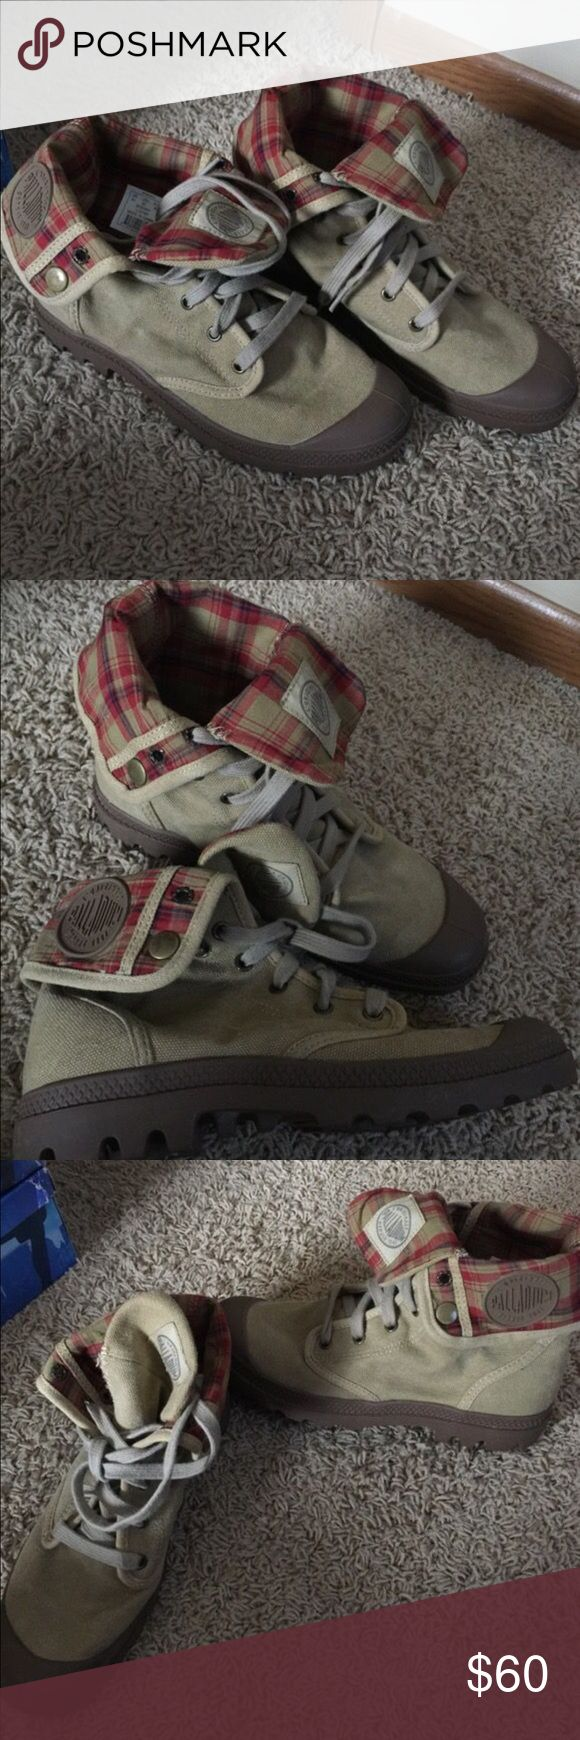 Palladium boots Palladium boots. Awesome condition. Only worn twice. Sorry, shoes do not come with a box. Palladium Shoes Sneakers